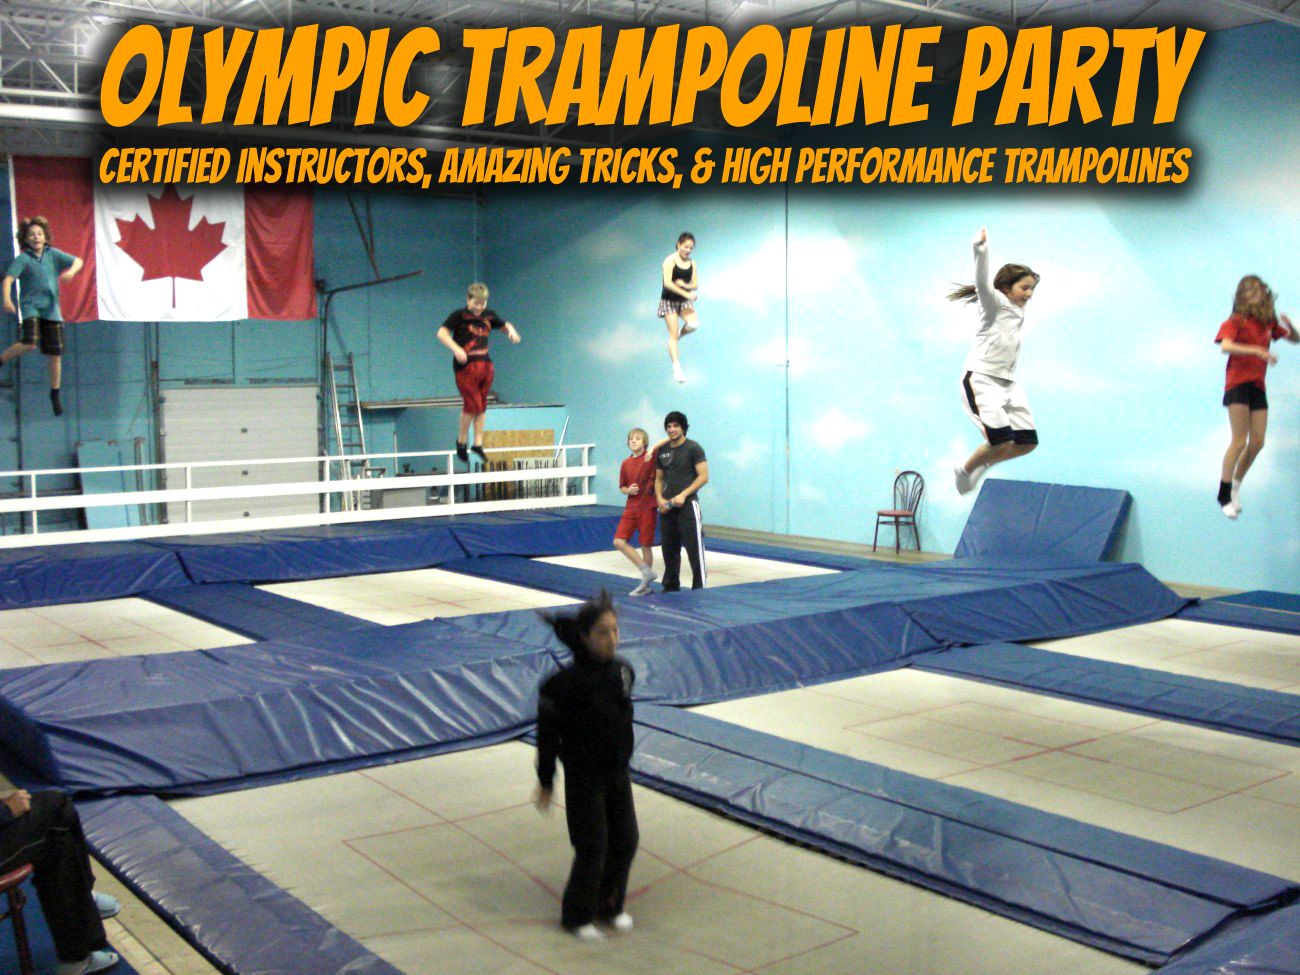 Airborne Olympic Trampoline Party